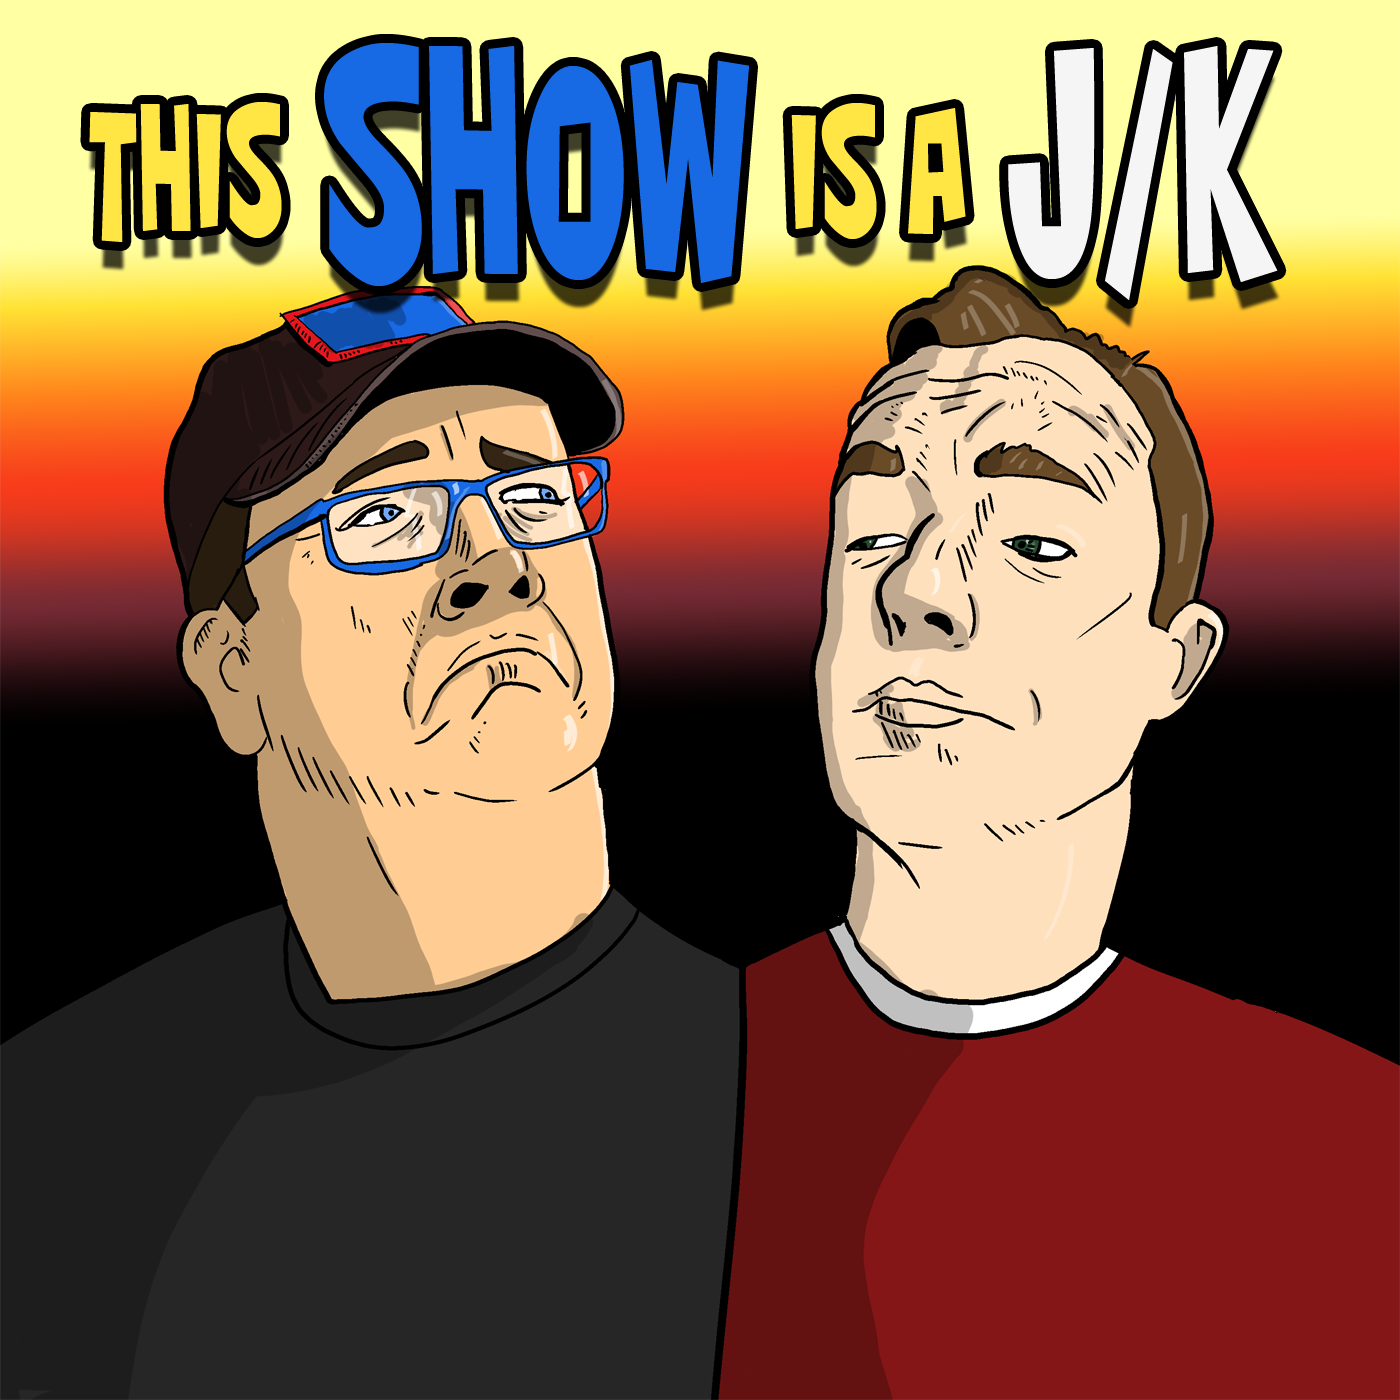 On Internet did Jason a Podcast Erect! show art